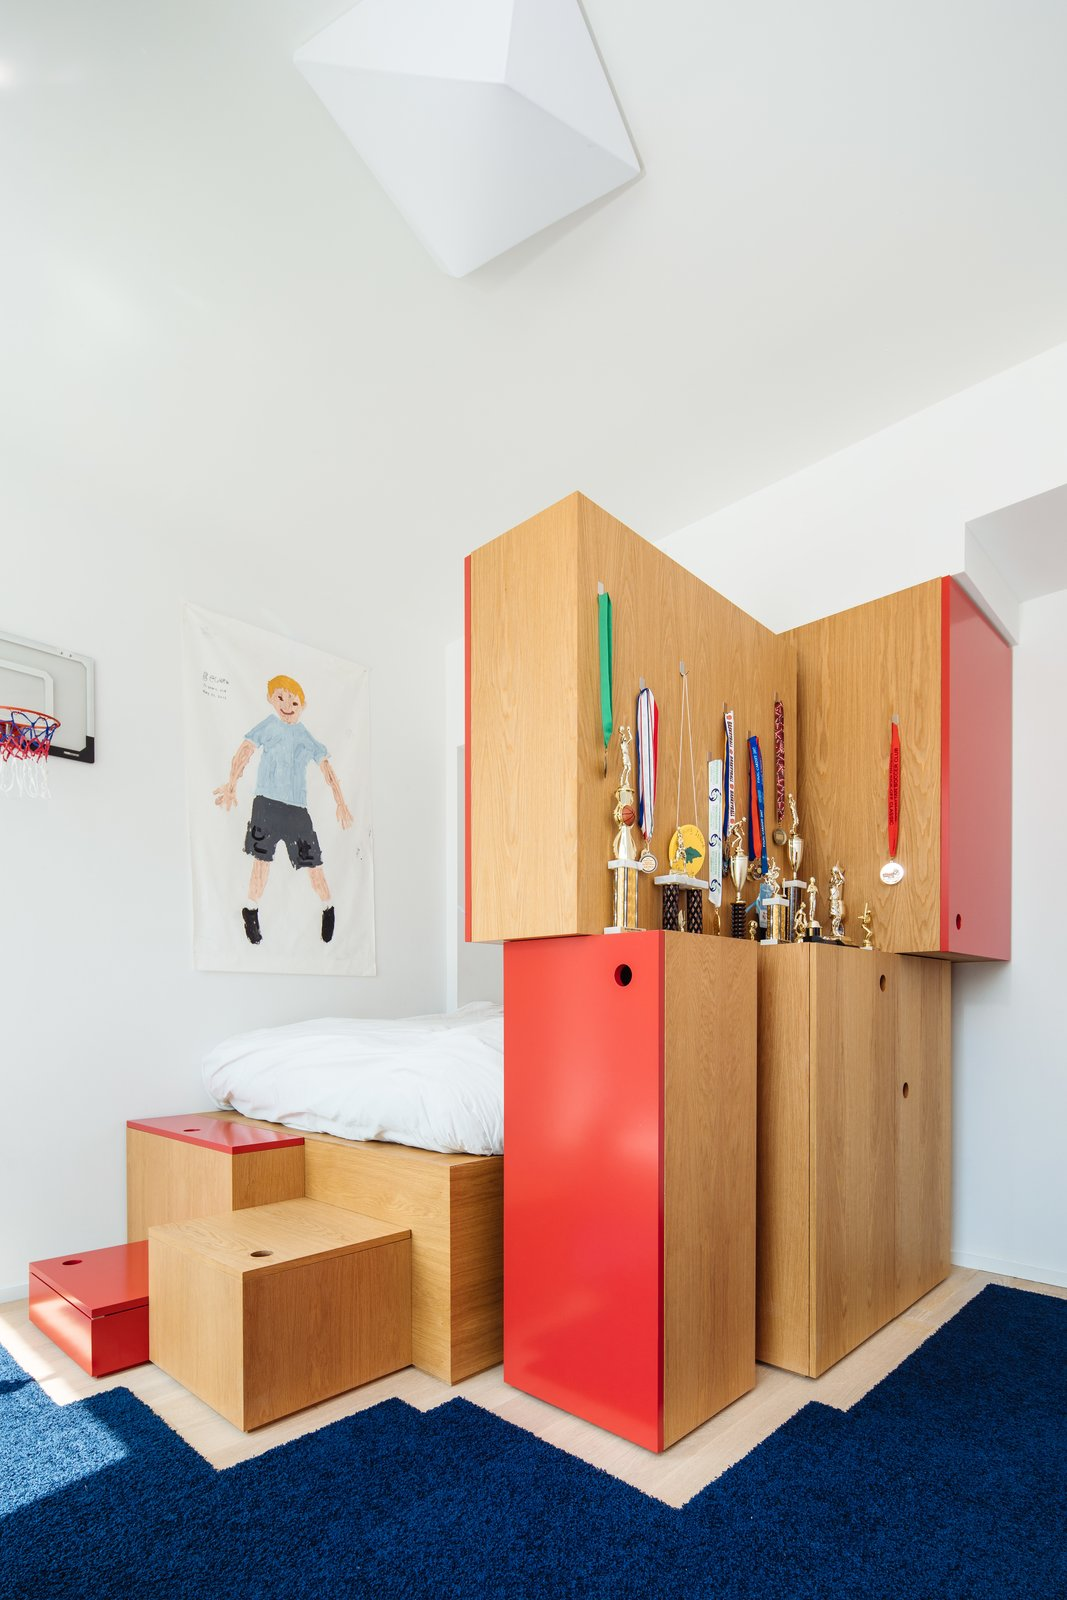 """Kids, Pre-Teen, Bed, Boy, Rug, Storage, Bedroom, and Light Hardwood In the boy's room, Dash Marshall designed a platform bed and multiple storage units, accented with red lacquer and arranged in a playful way. """"They're built-ins, but we didn't want them to look like built-ins,"""" says firm principal Ritchie Yao. """"They're more like stacked boxes.""""  Kids Storage Bed Photos from A California Couple Give a Cookie-Cutter Brooklyn Condo Some Personality"""